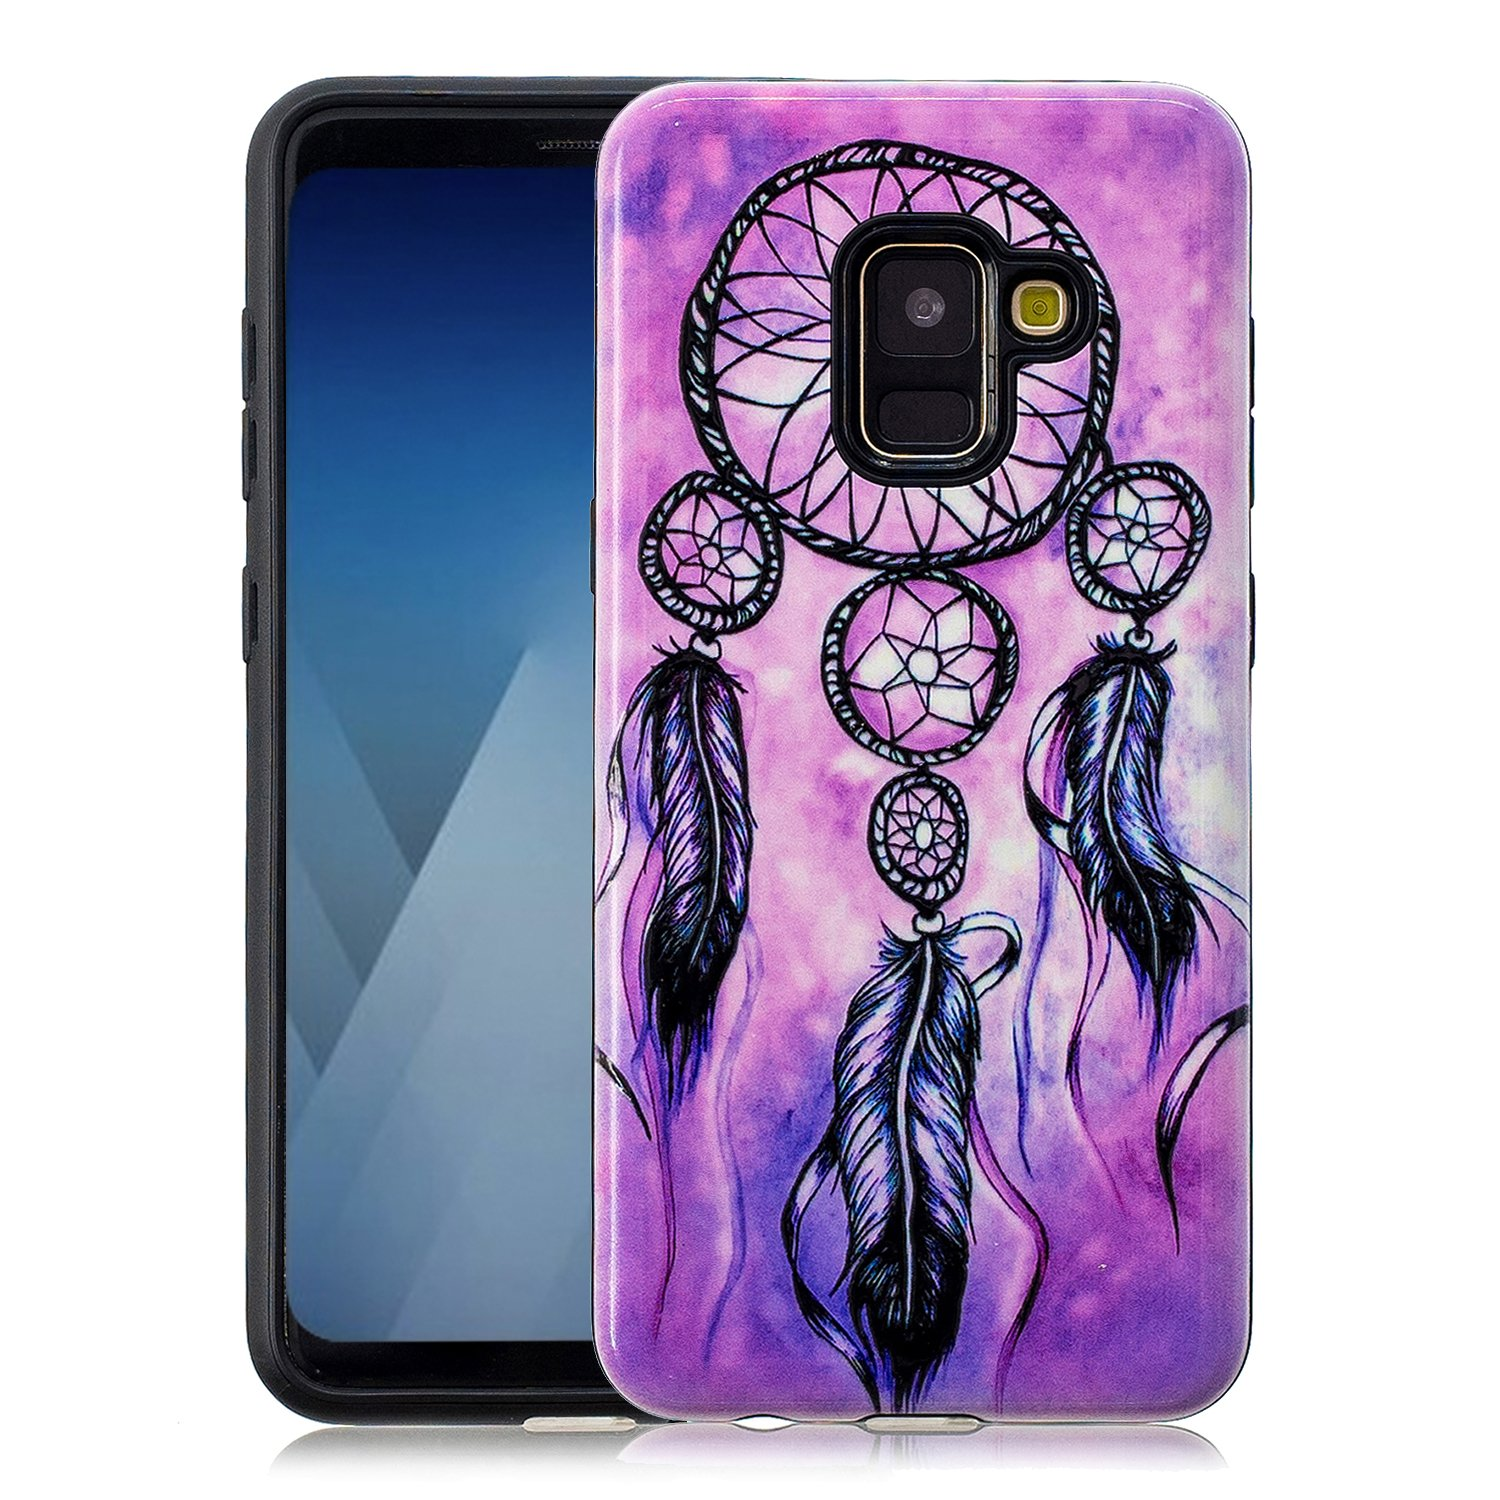 Gostyle Samsung Galaxy A8 2018 Case, Ultra Slim 2 in 1 Dual Layer Hybrid Hard PC + Soft Rubber TPU Bumper Cover, Creative Colorful Lotus Pattern Anti-Scratch Shockproof Protective Cover